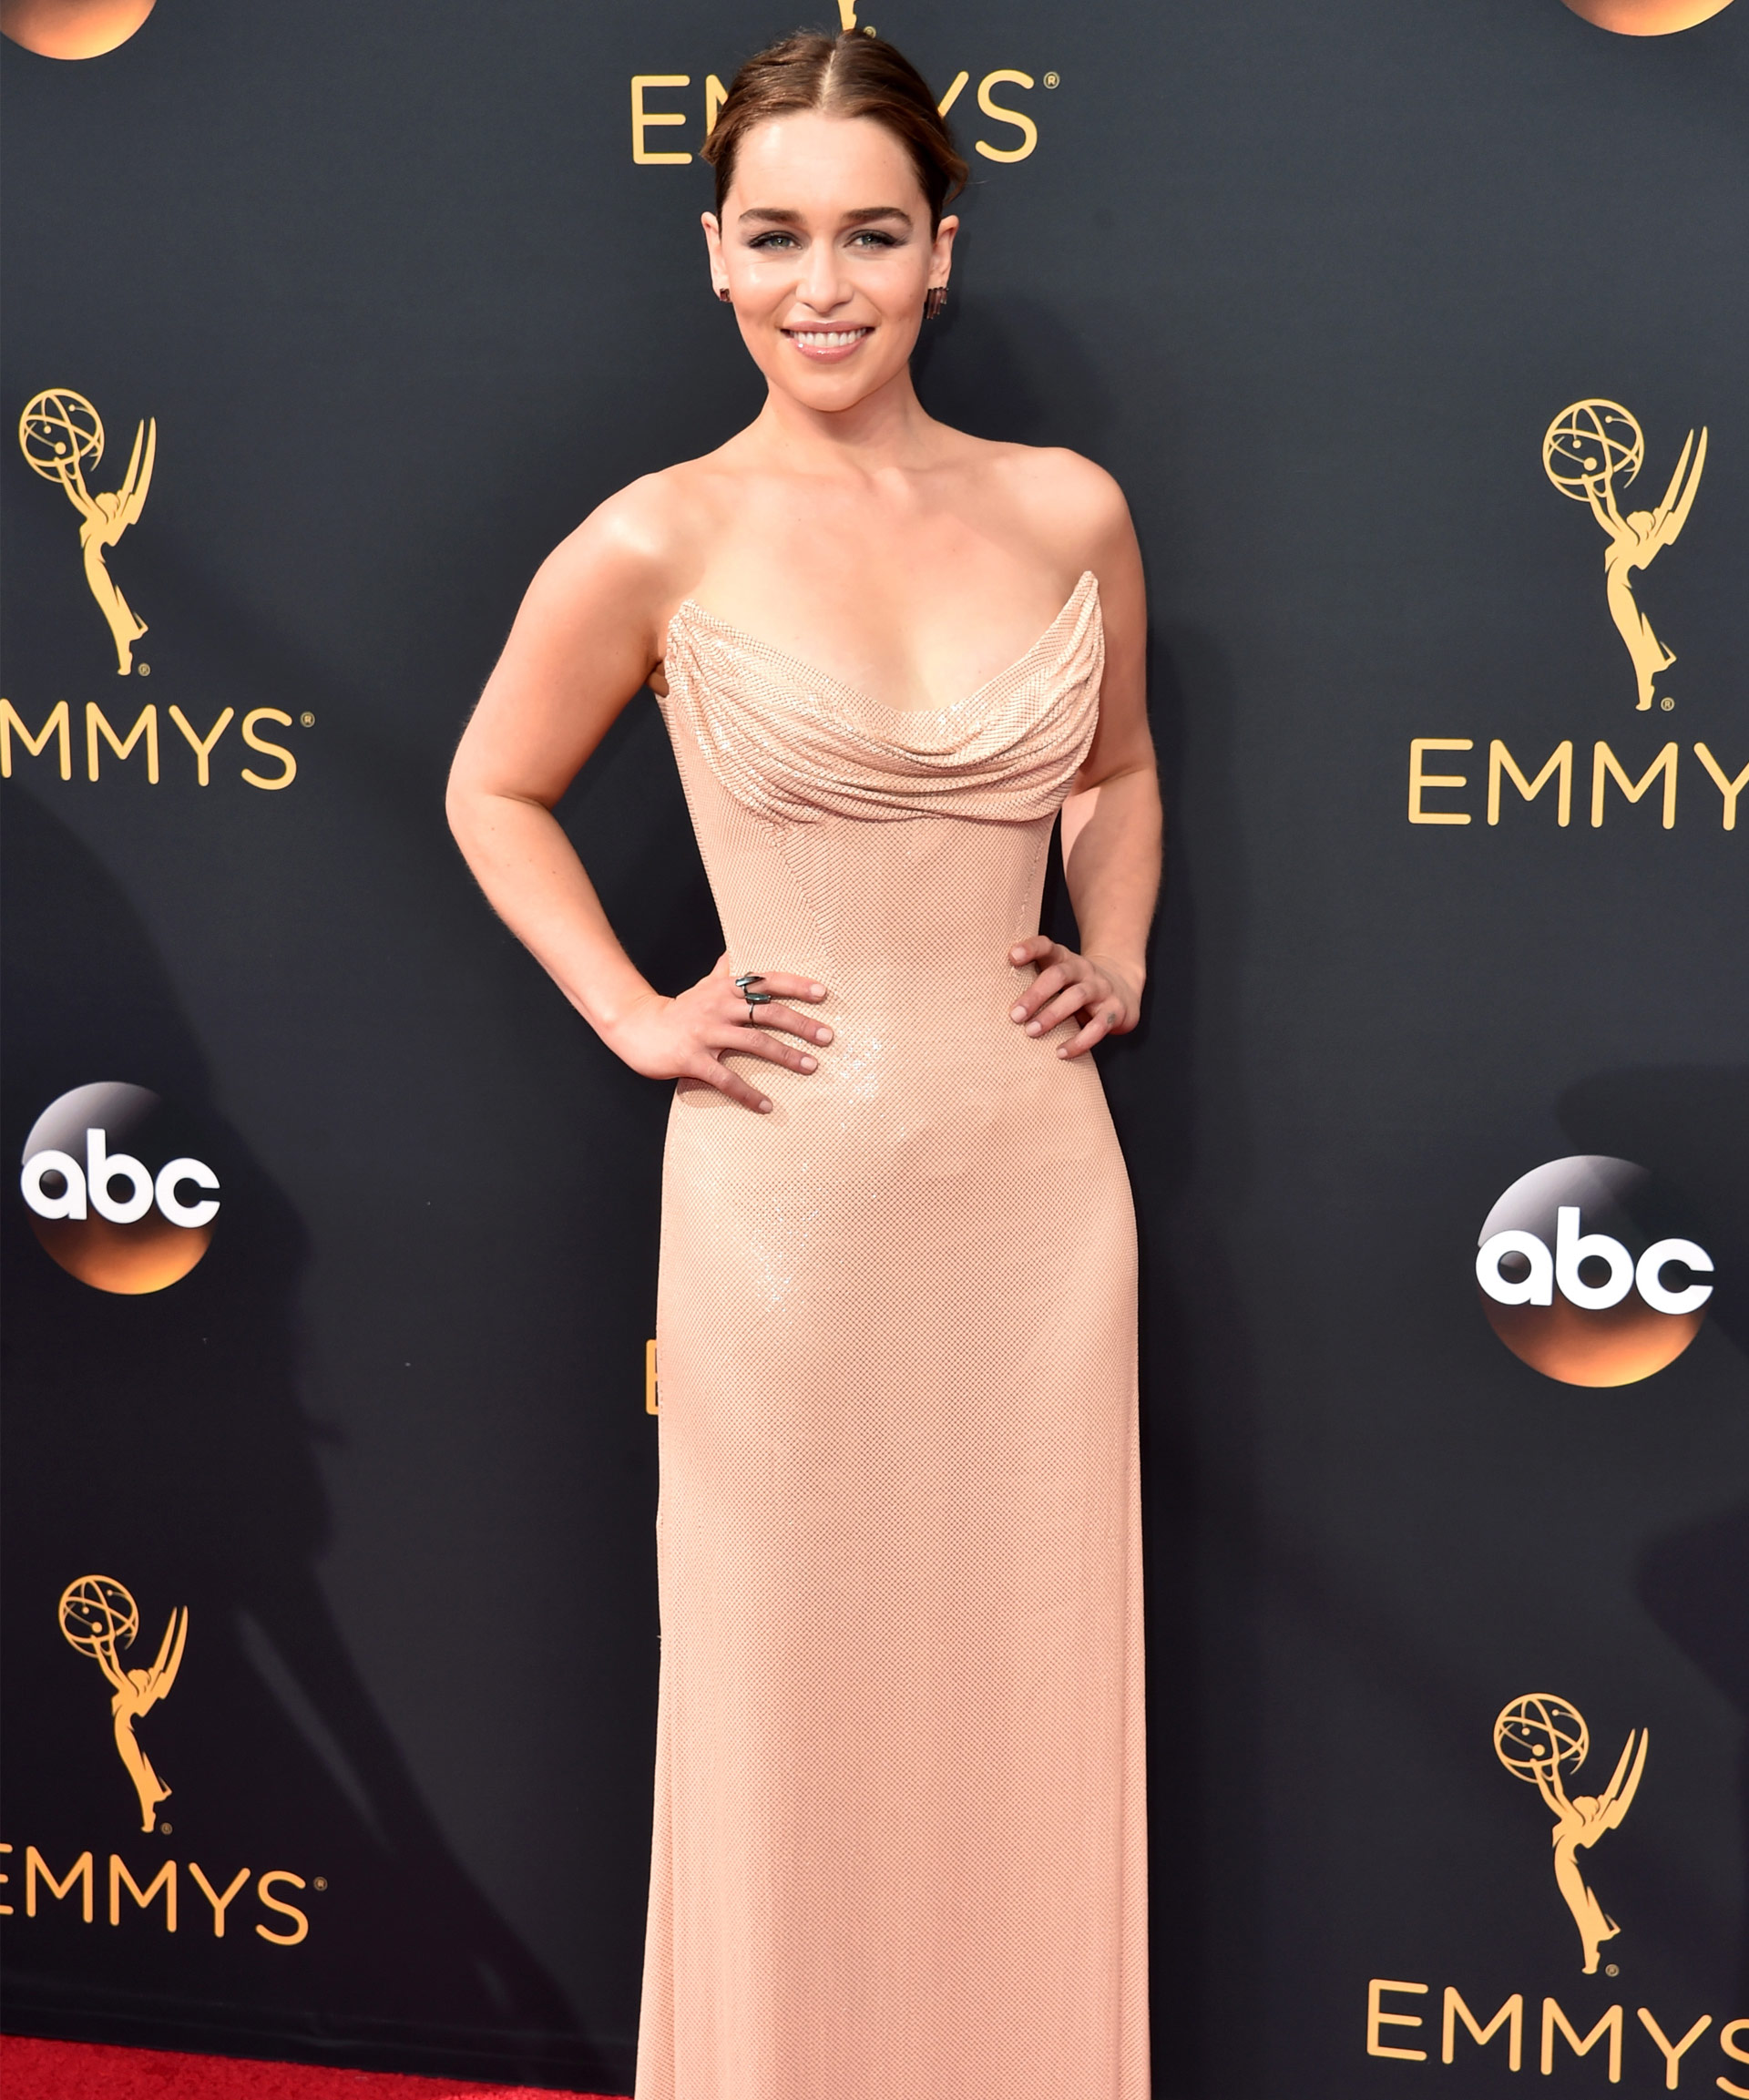 Matt LeBlanc draws flak for joking about Emilia Clarke at Emmys